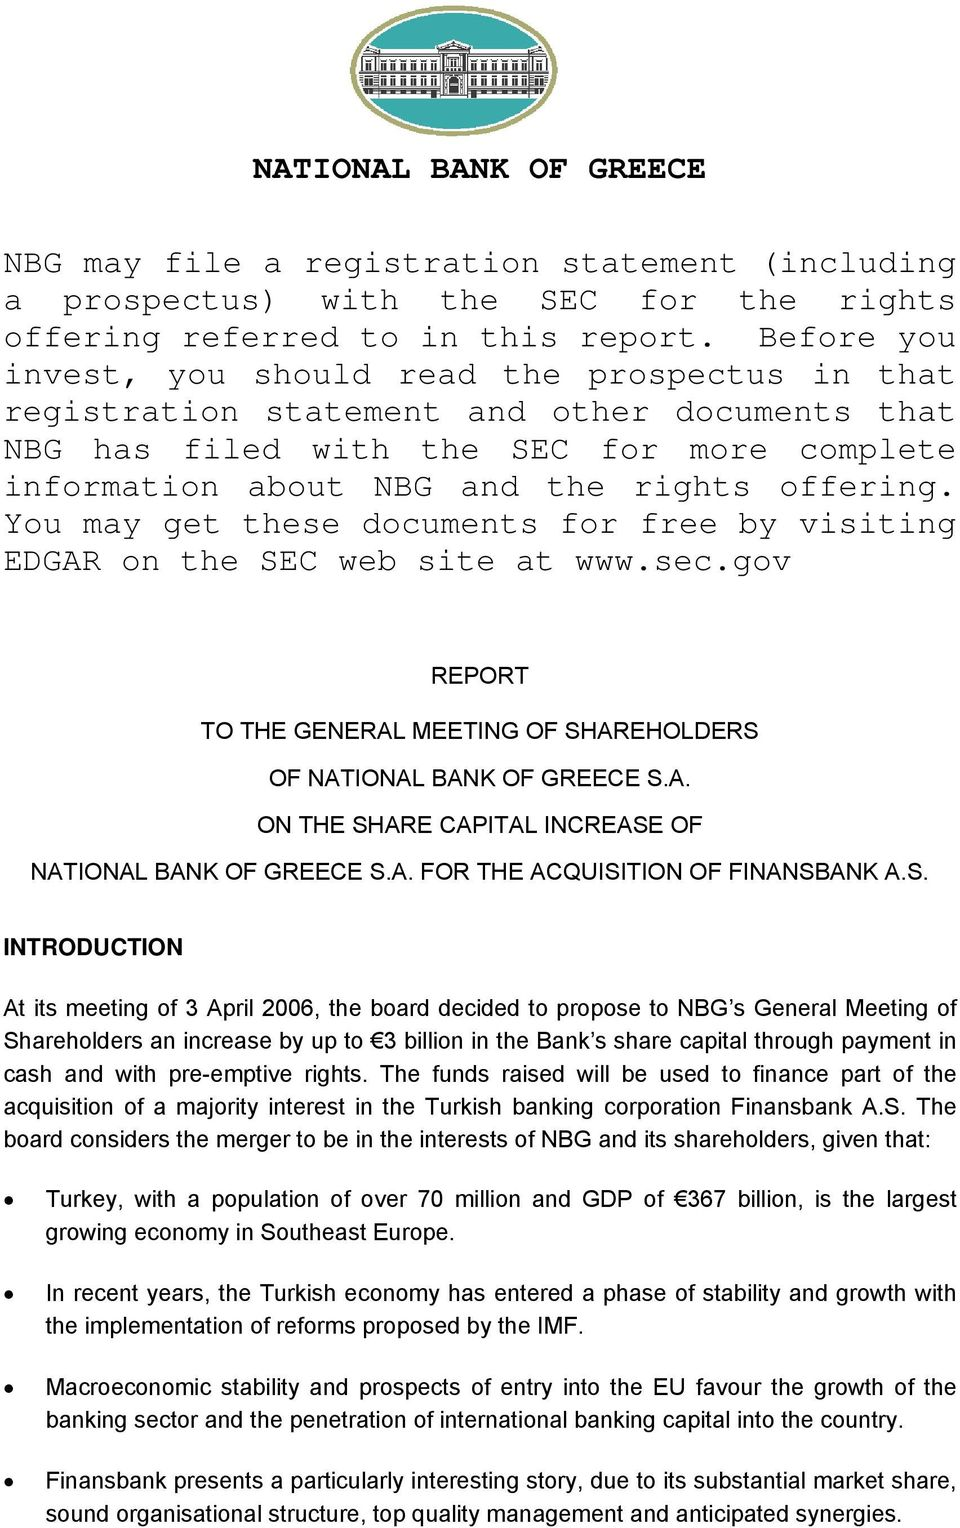 You may get these documents for free by visiting EDGAR on the SEC web site at www.sec.gov REPORT TO THE GENERAL MEETING OF SHAREHOLDERS OF NATIONAL BANK OF GREECE S.A. ON THE SHARE CAPITAL INCREASE OF NATIONAL BANK OF GREECE S.